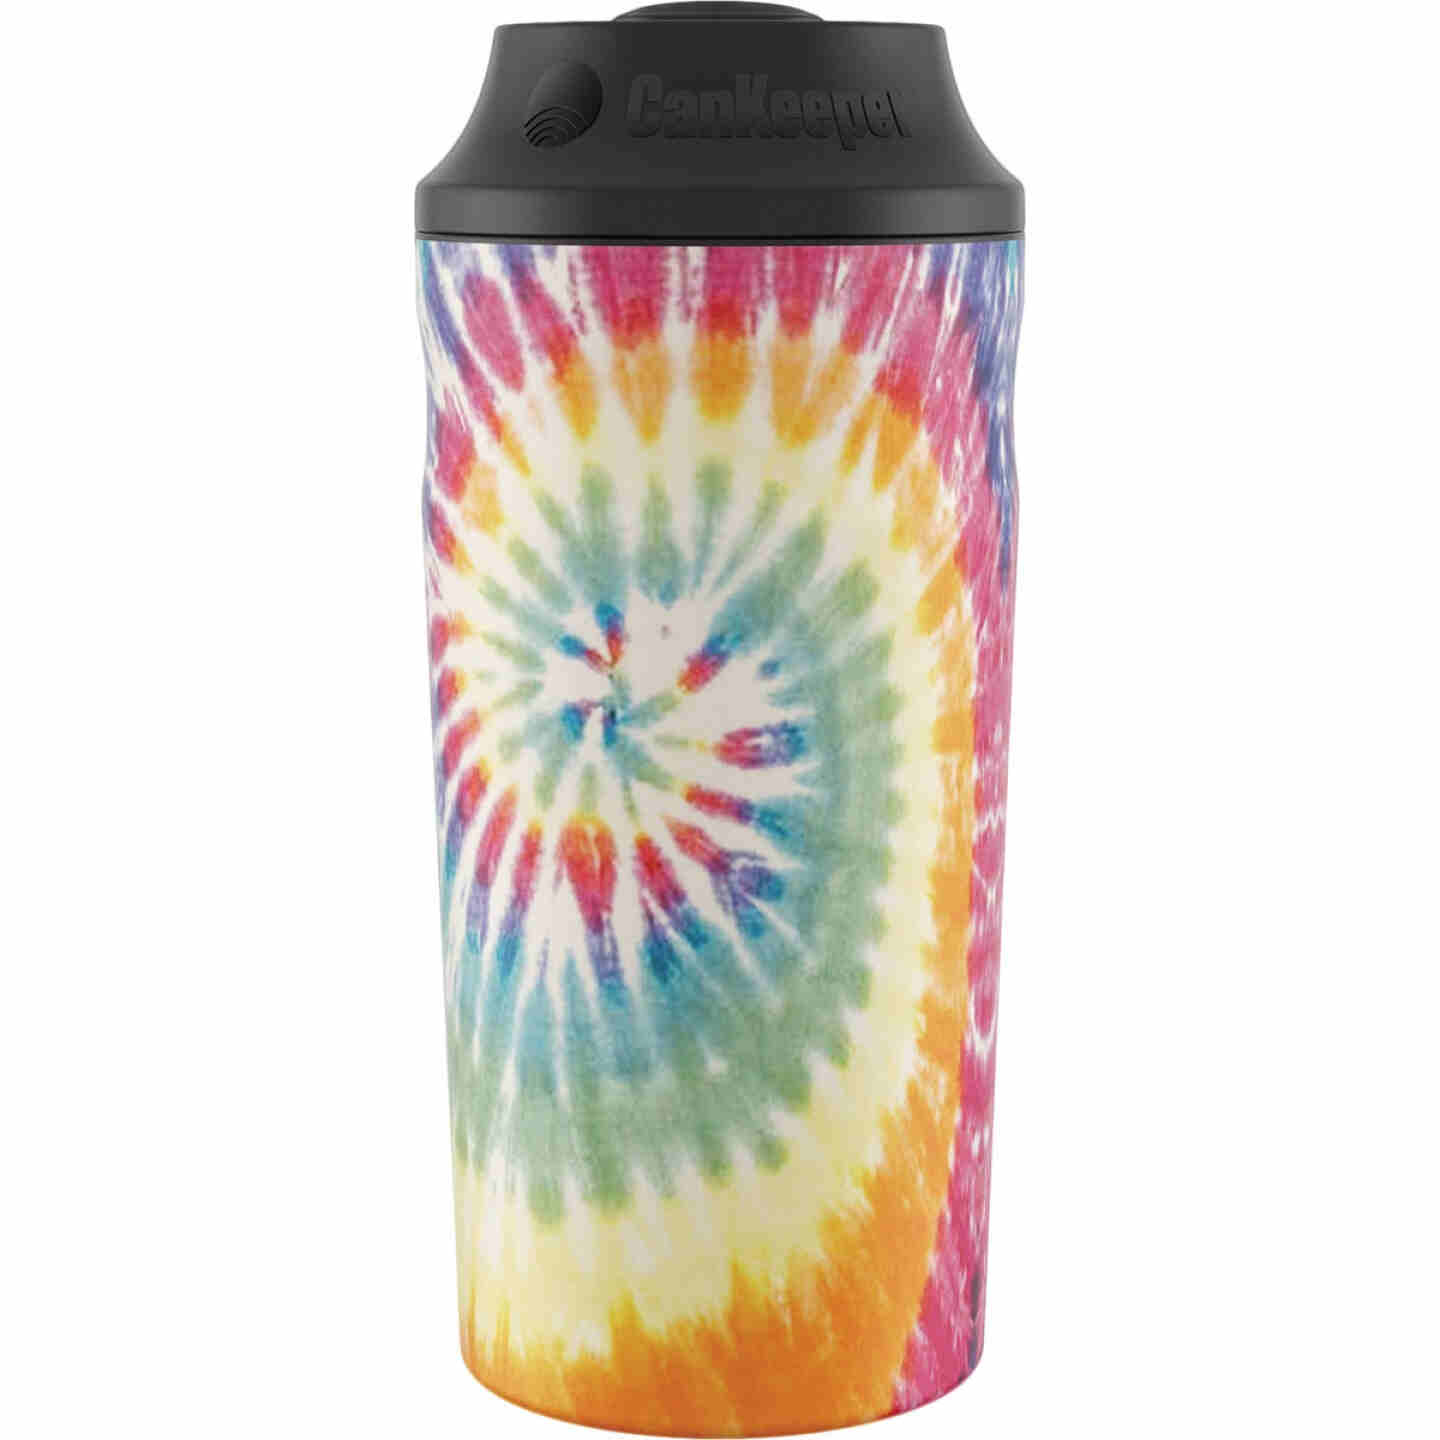 CanKeeper Tie Dye Can Holder Image 1